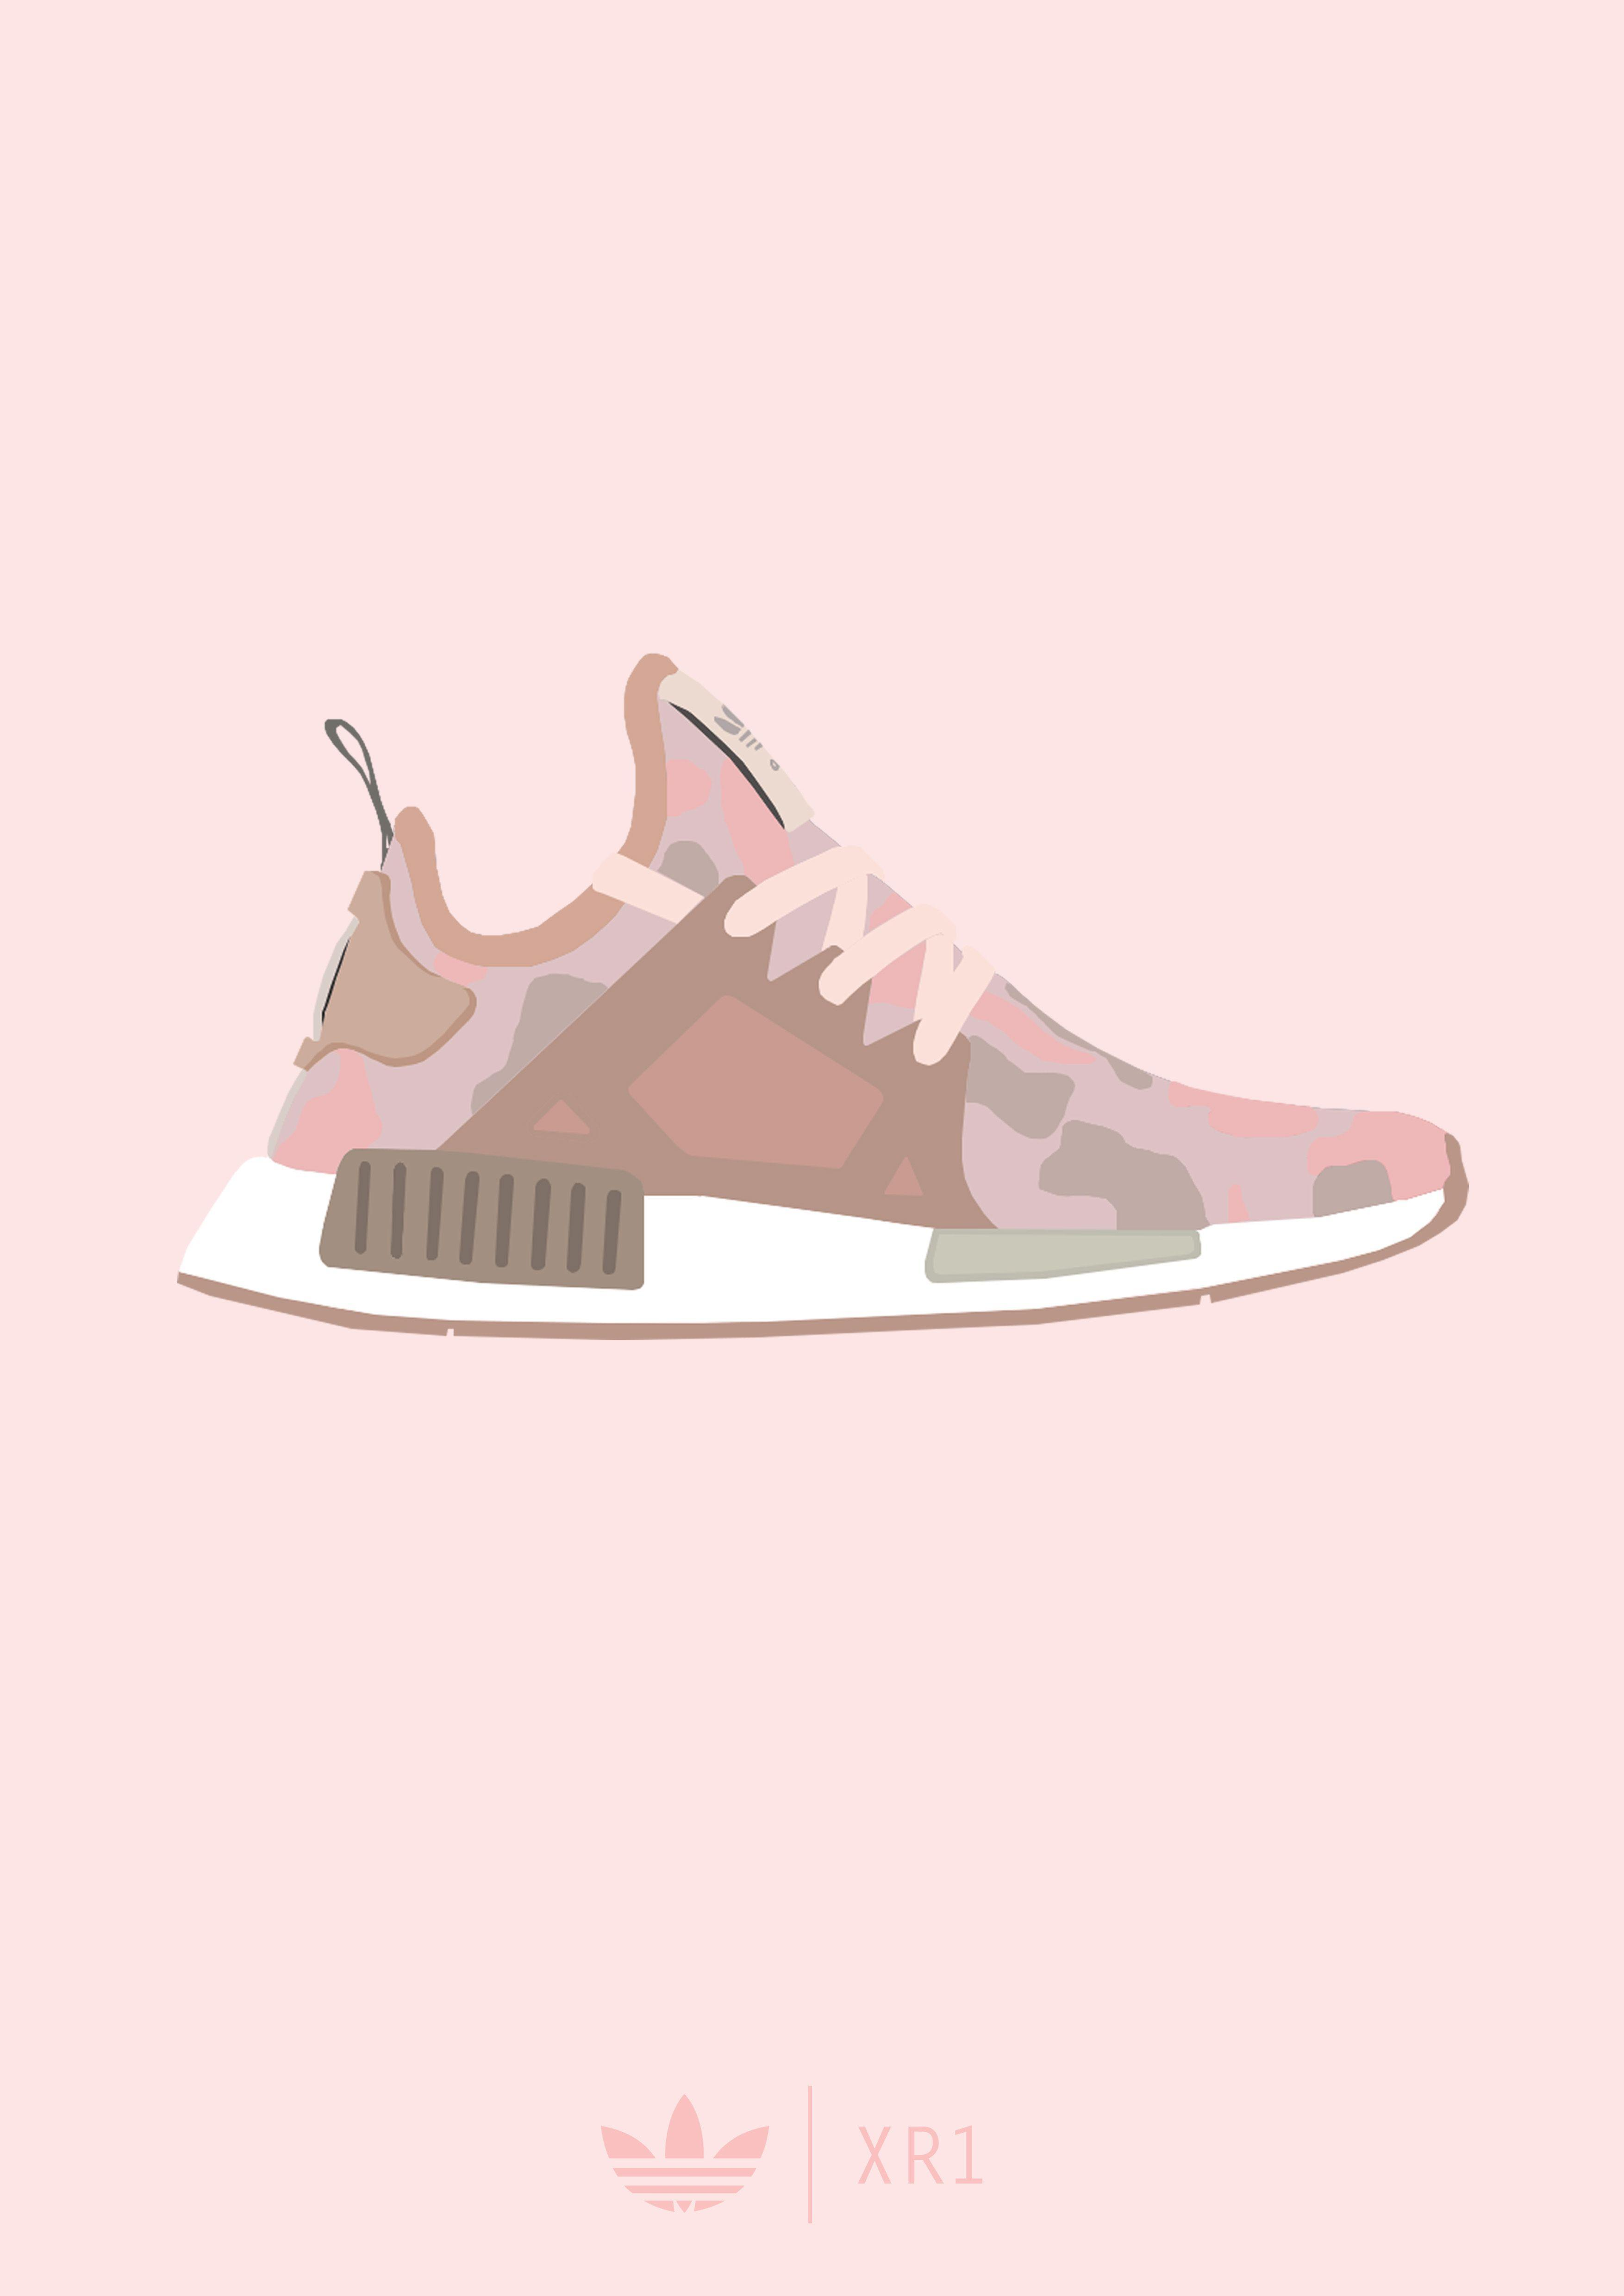 576542beb3ed06 NMD XR1 Pink Duck Camo Wallpapers - Album on Imgur